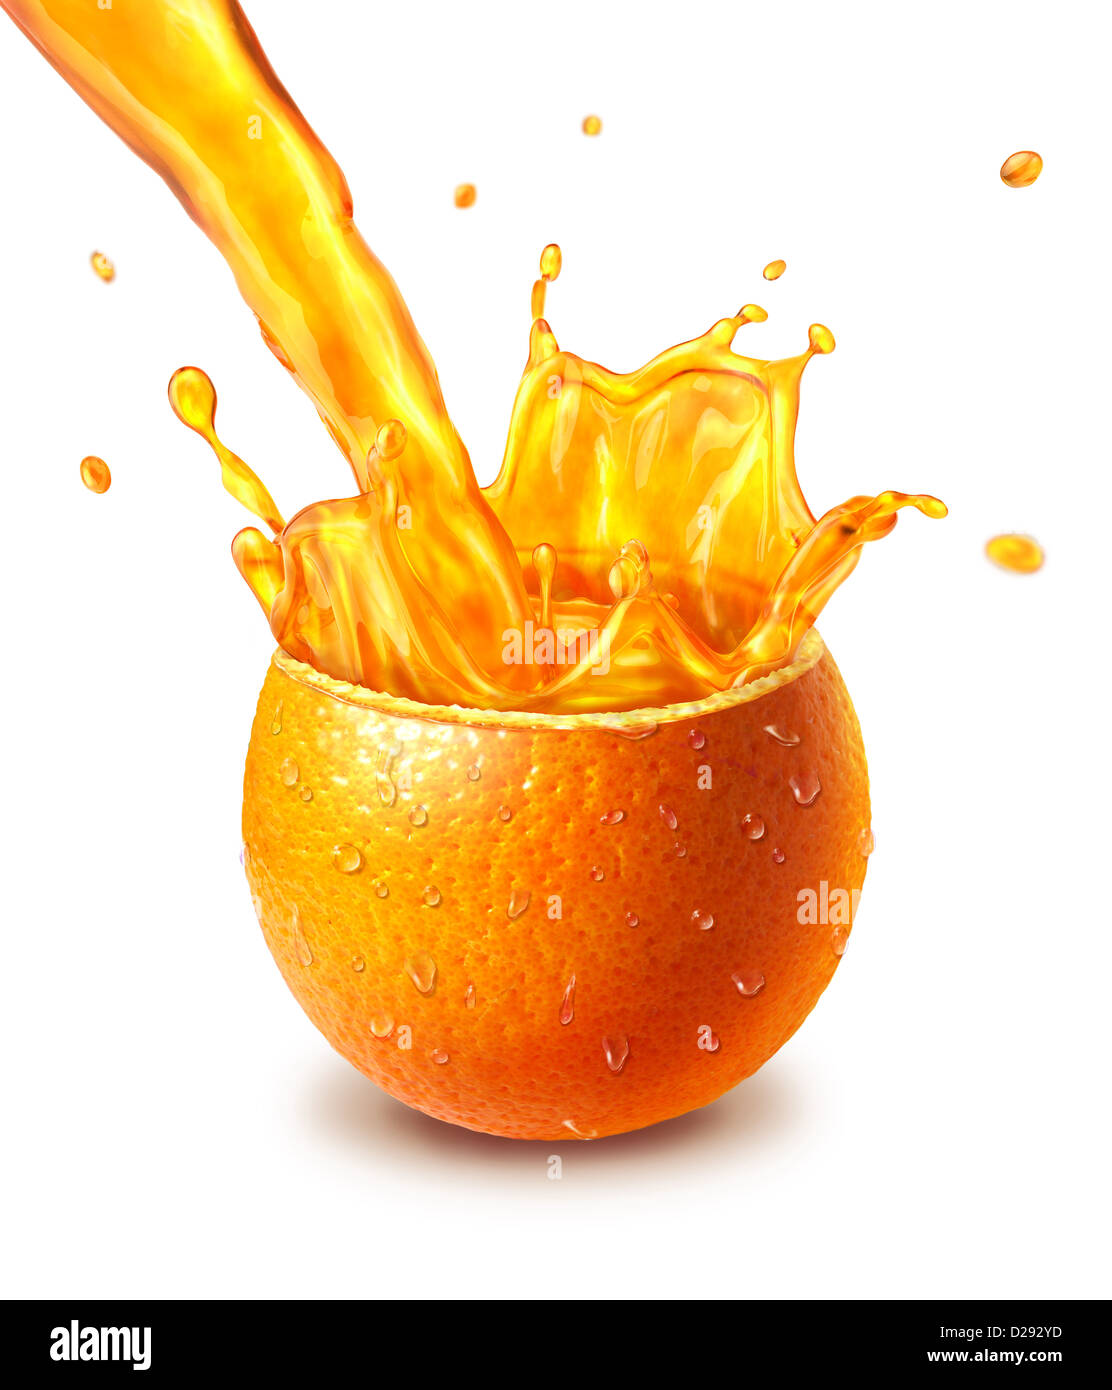 Orange fresh fruit cut in half, with a juice splash in the middle. - Stock Image